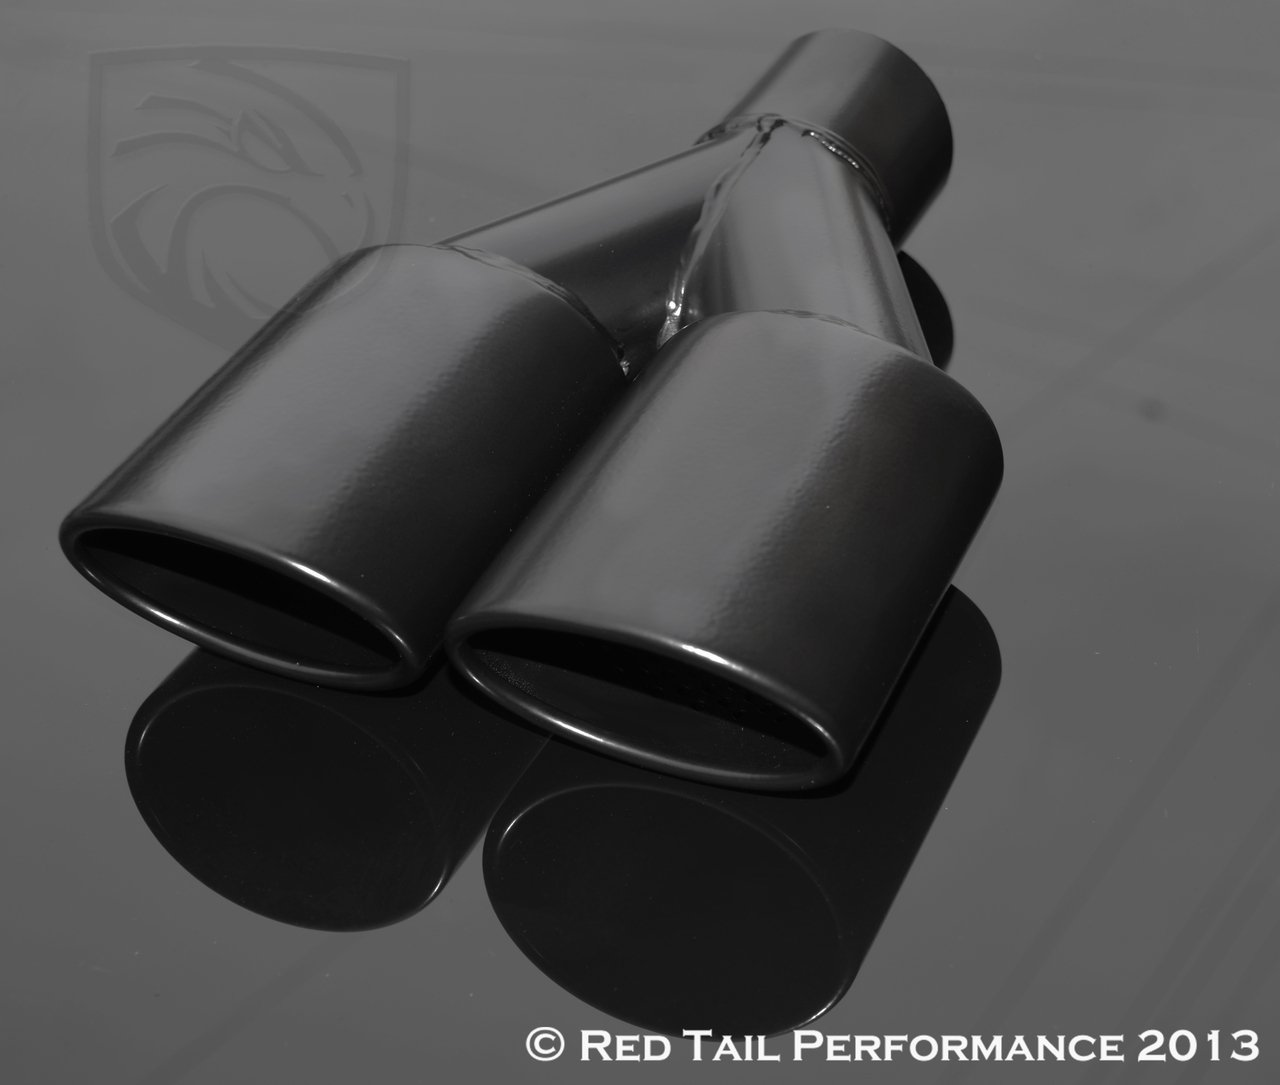 Black Powder Coated AMG Style Exhaust Muffler Tip Dual Oval Forward Slash Cut Rolled Edge 2.25'' Inlet / ID, 3.5''X2.5'' Outlet / OD, 9.75'' Length, 7.375'' Outer Width by Mina Gallery